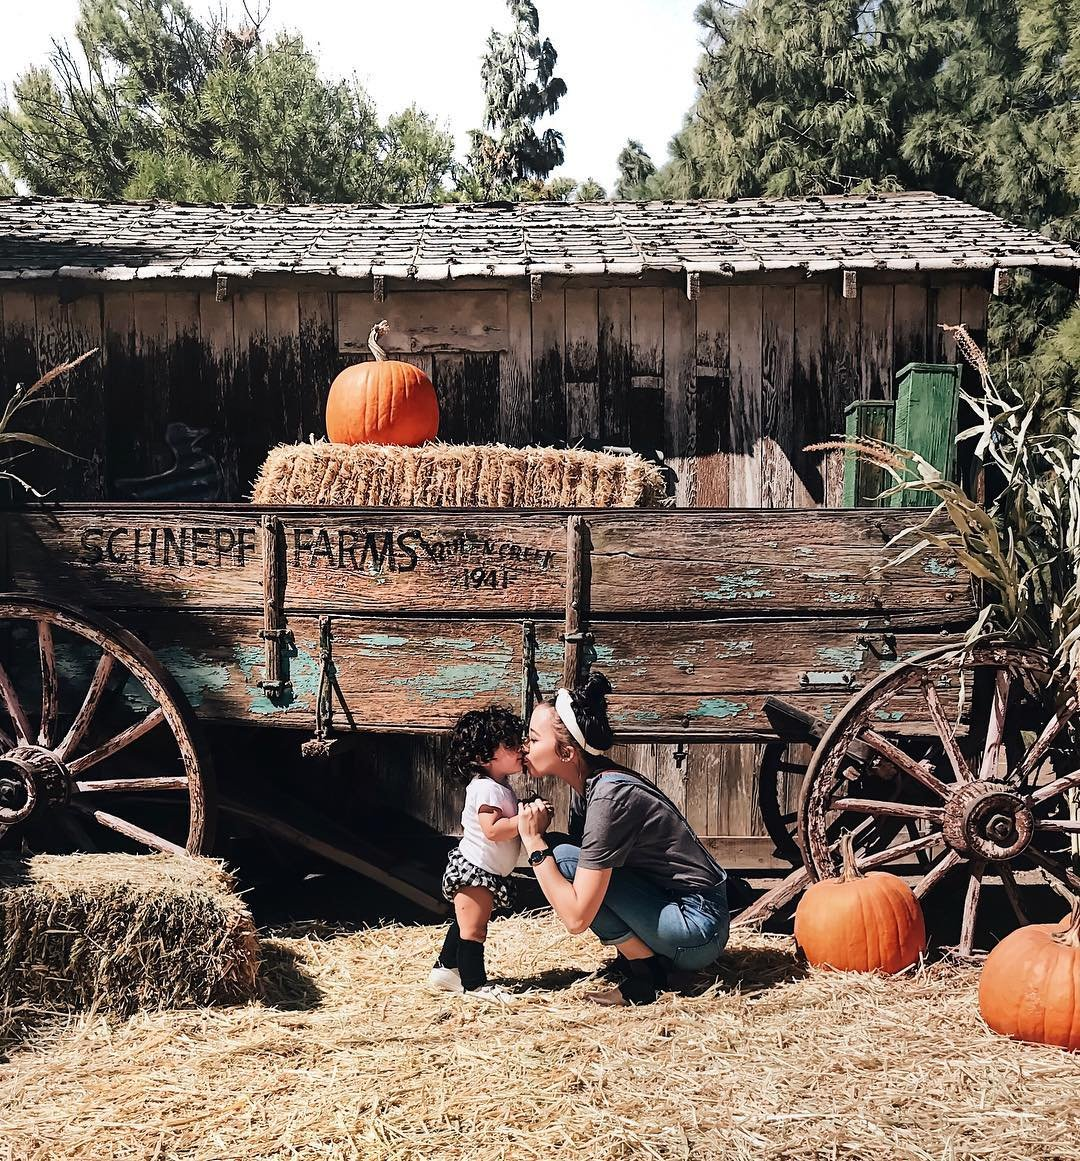 Photo by user shaemwoods, caption reads Took my babies to the pumpkin patch 🎃 and ate our weight in chili and corn bread 😋 so glad it's finally fall!